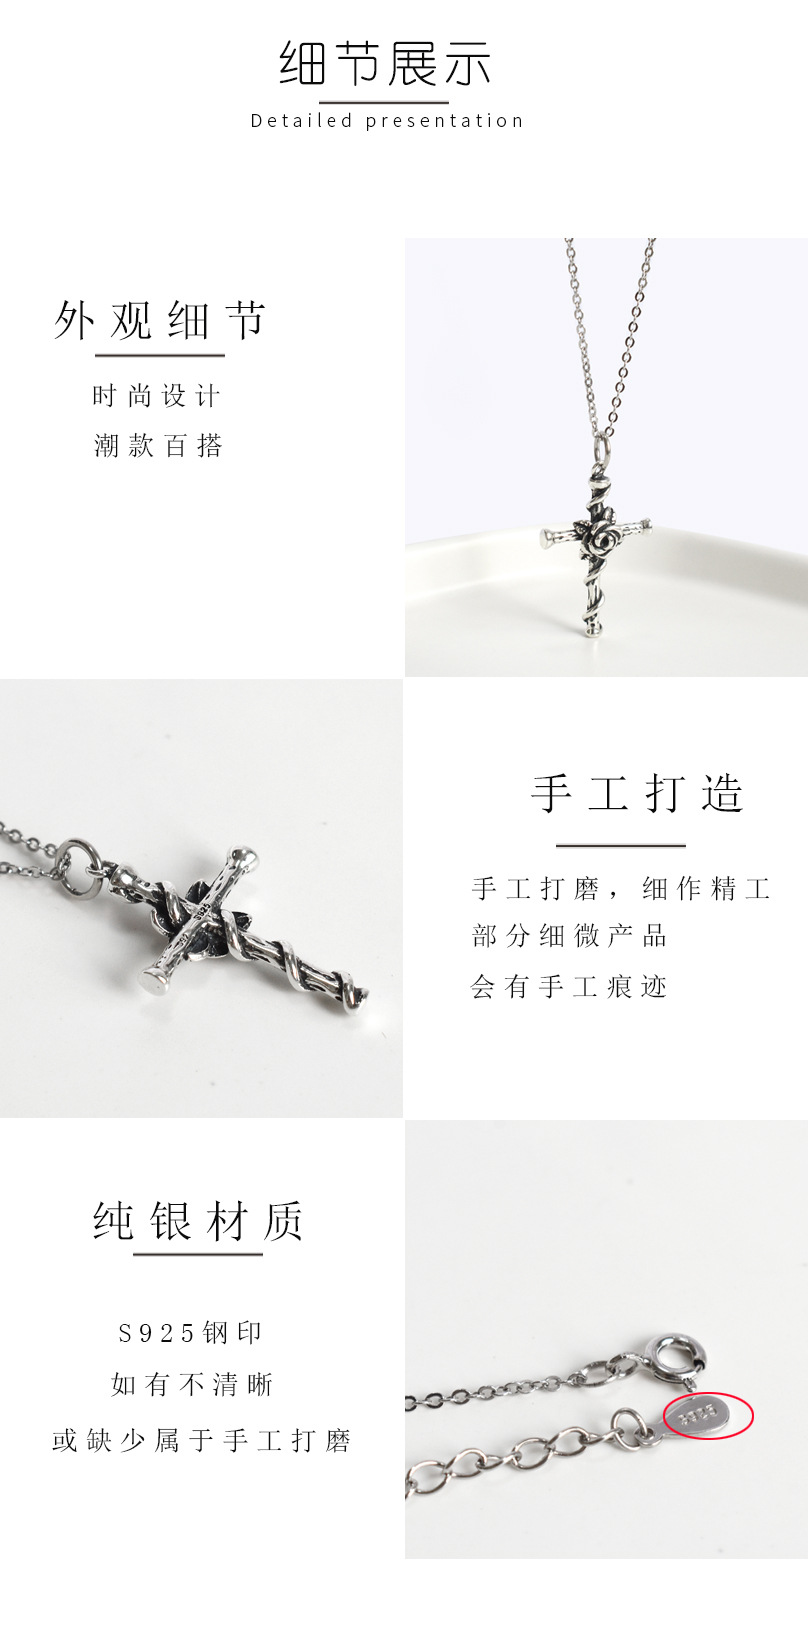 Hb2af6725fd6440dfb793a7c4f549a5a23 - Vintage Do Old Rose Cross Pendant Necklace S925 Sterling Silver Personality Trend Female Collarbone Chain